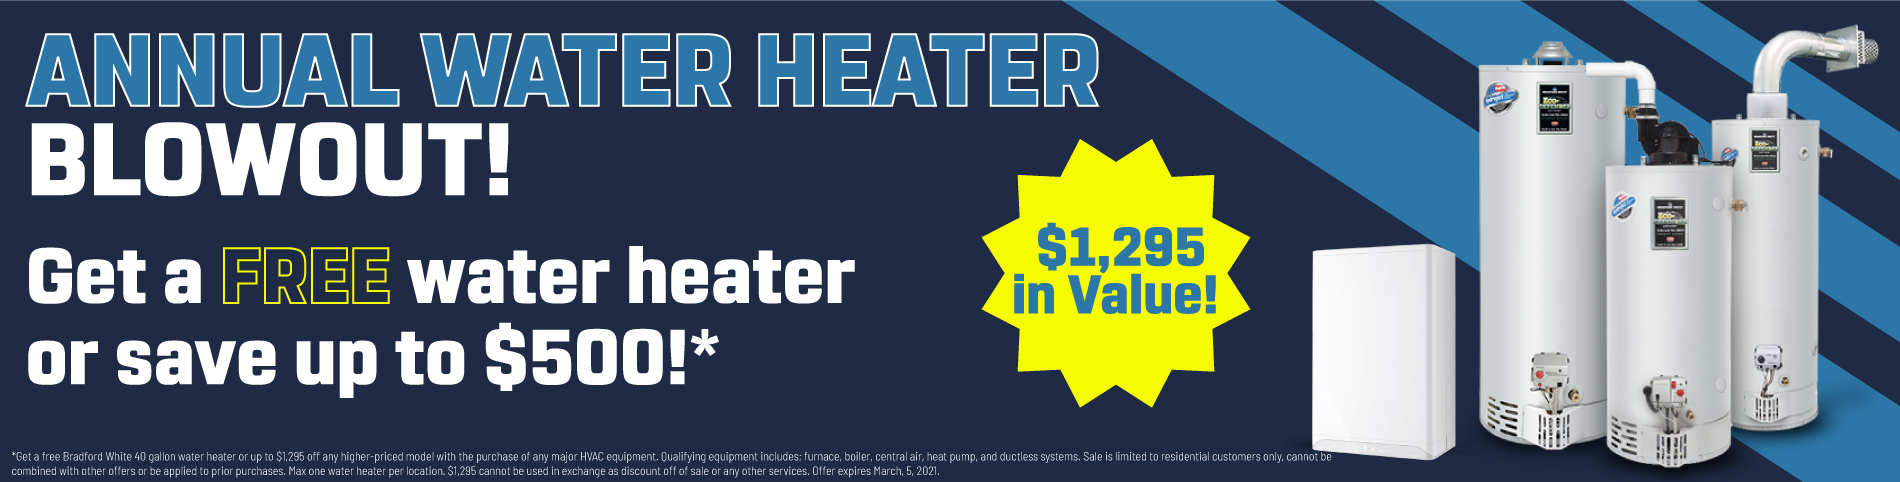 Water Heater Blowout